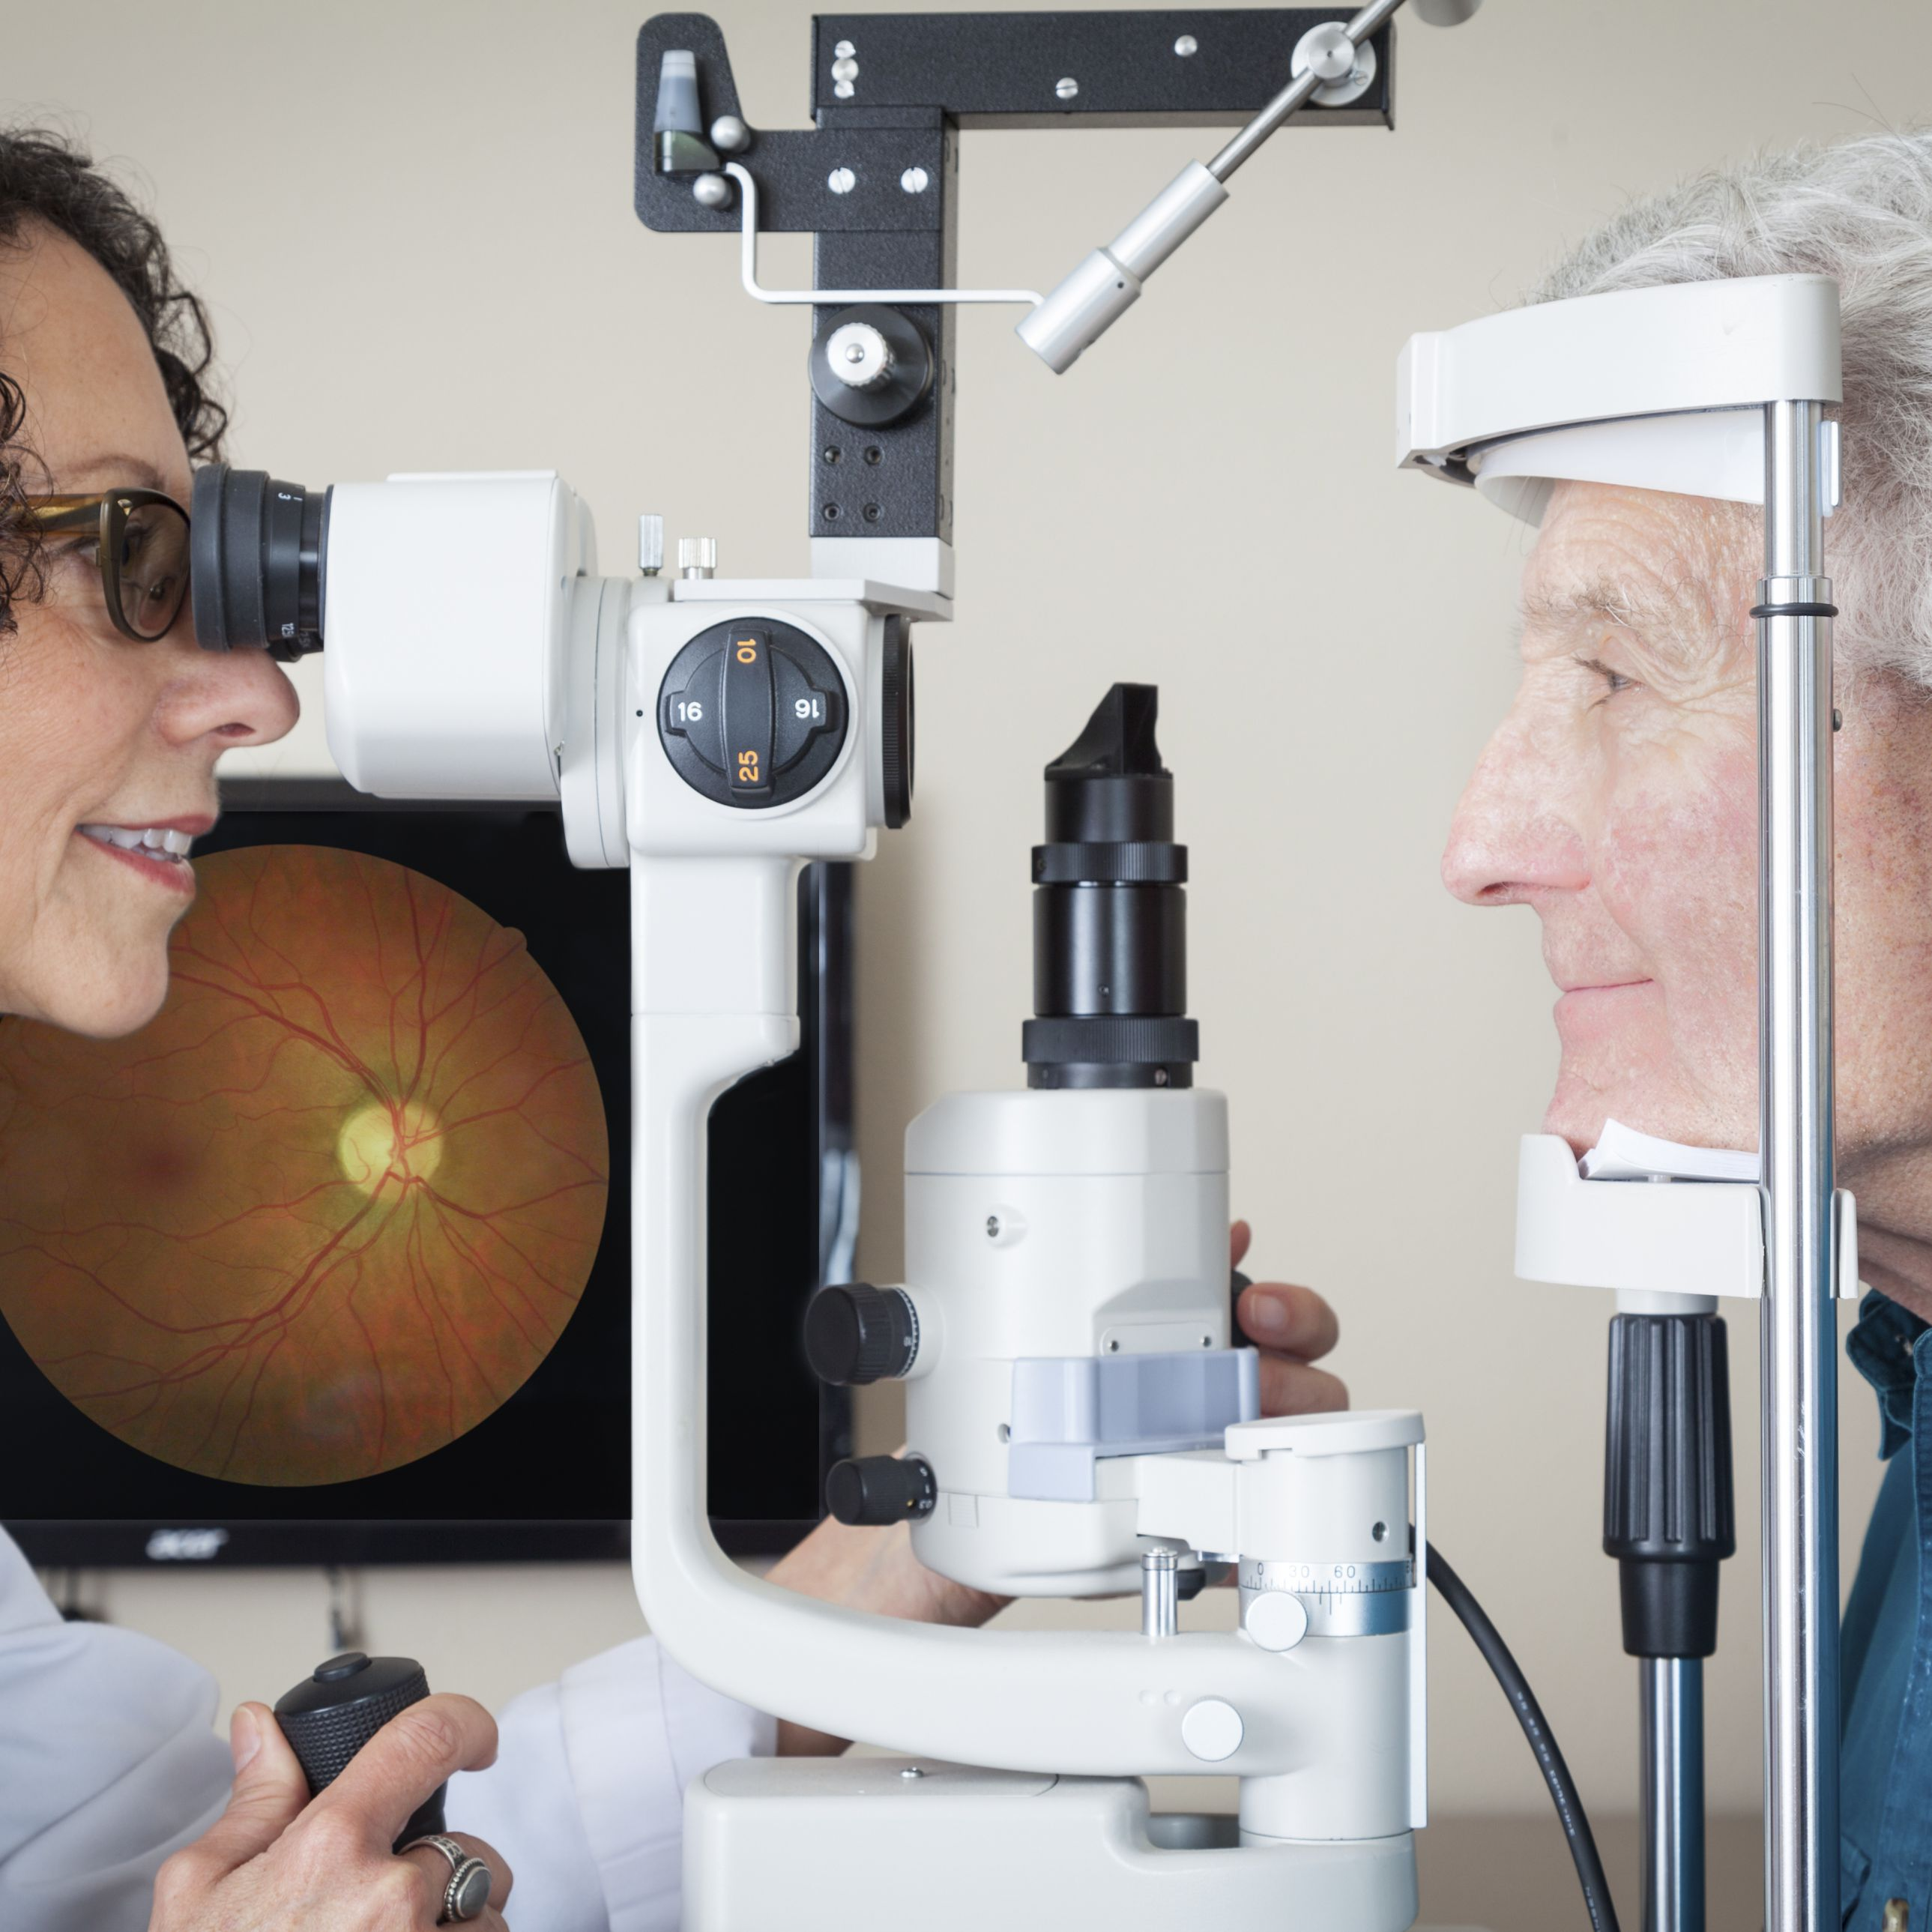 Macular Hole Symptoms and Treatment